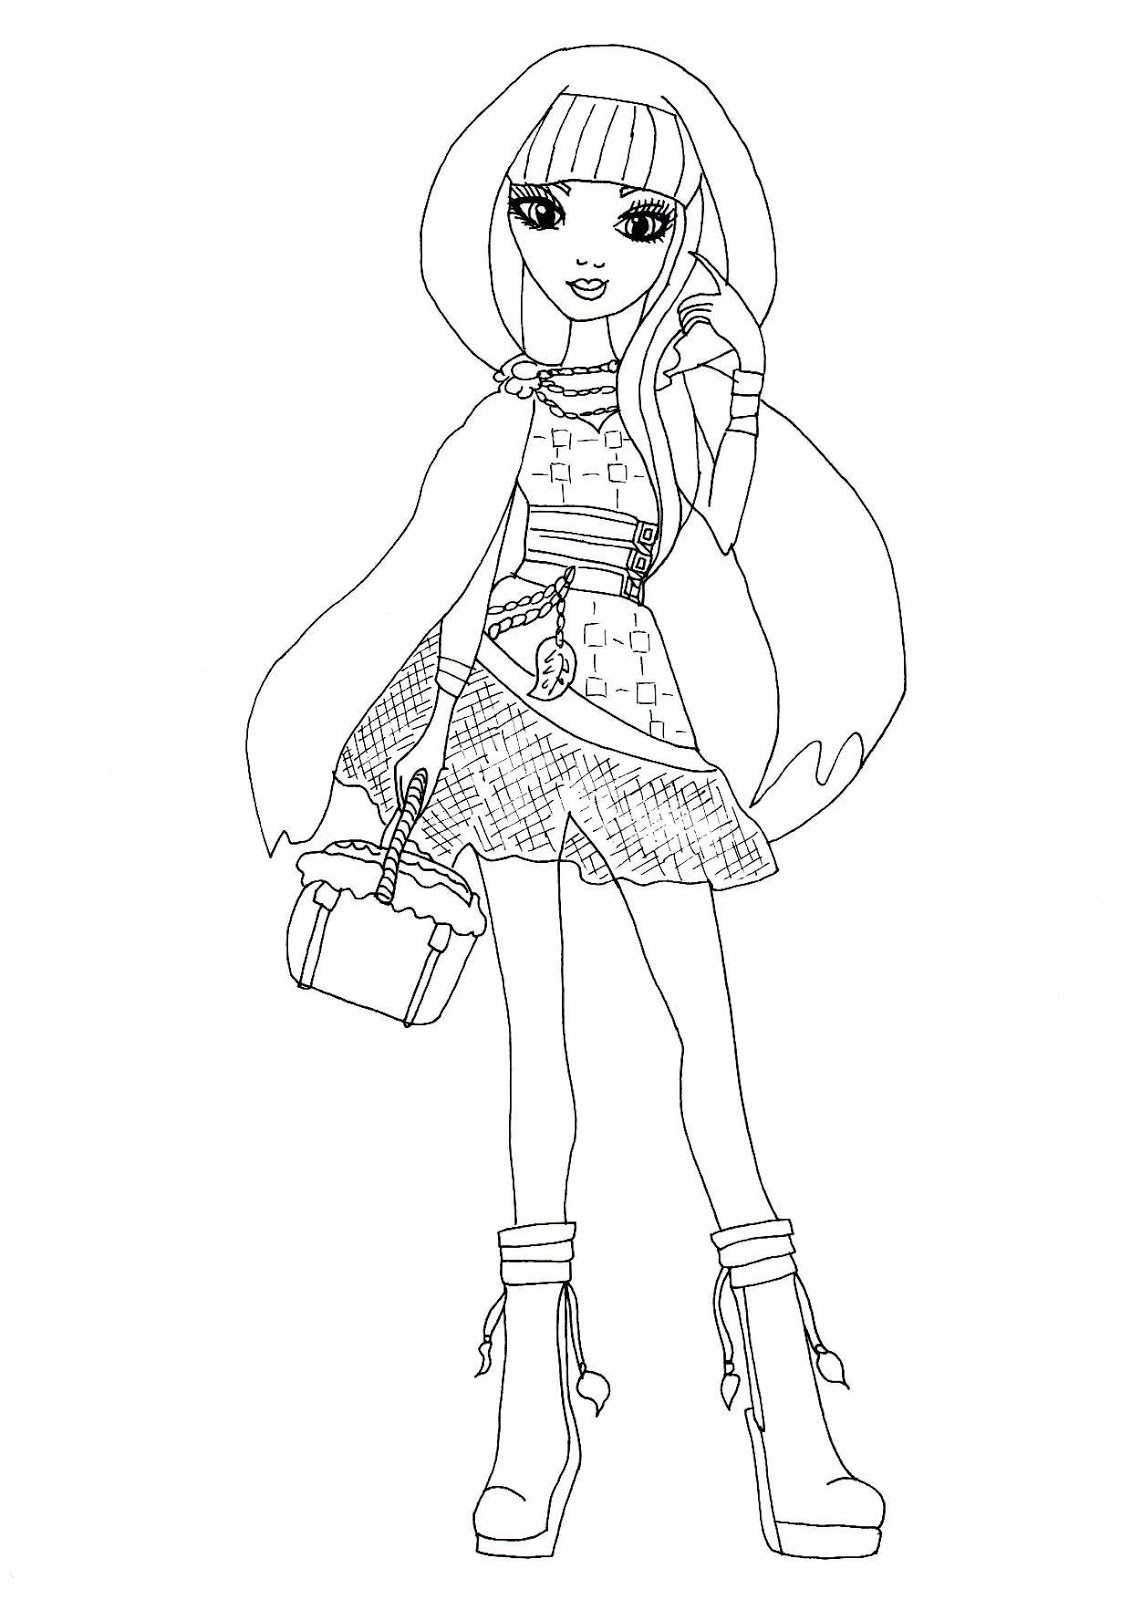 Coloring Pages Ever After High : Free printable ever after high coloring pages september